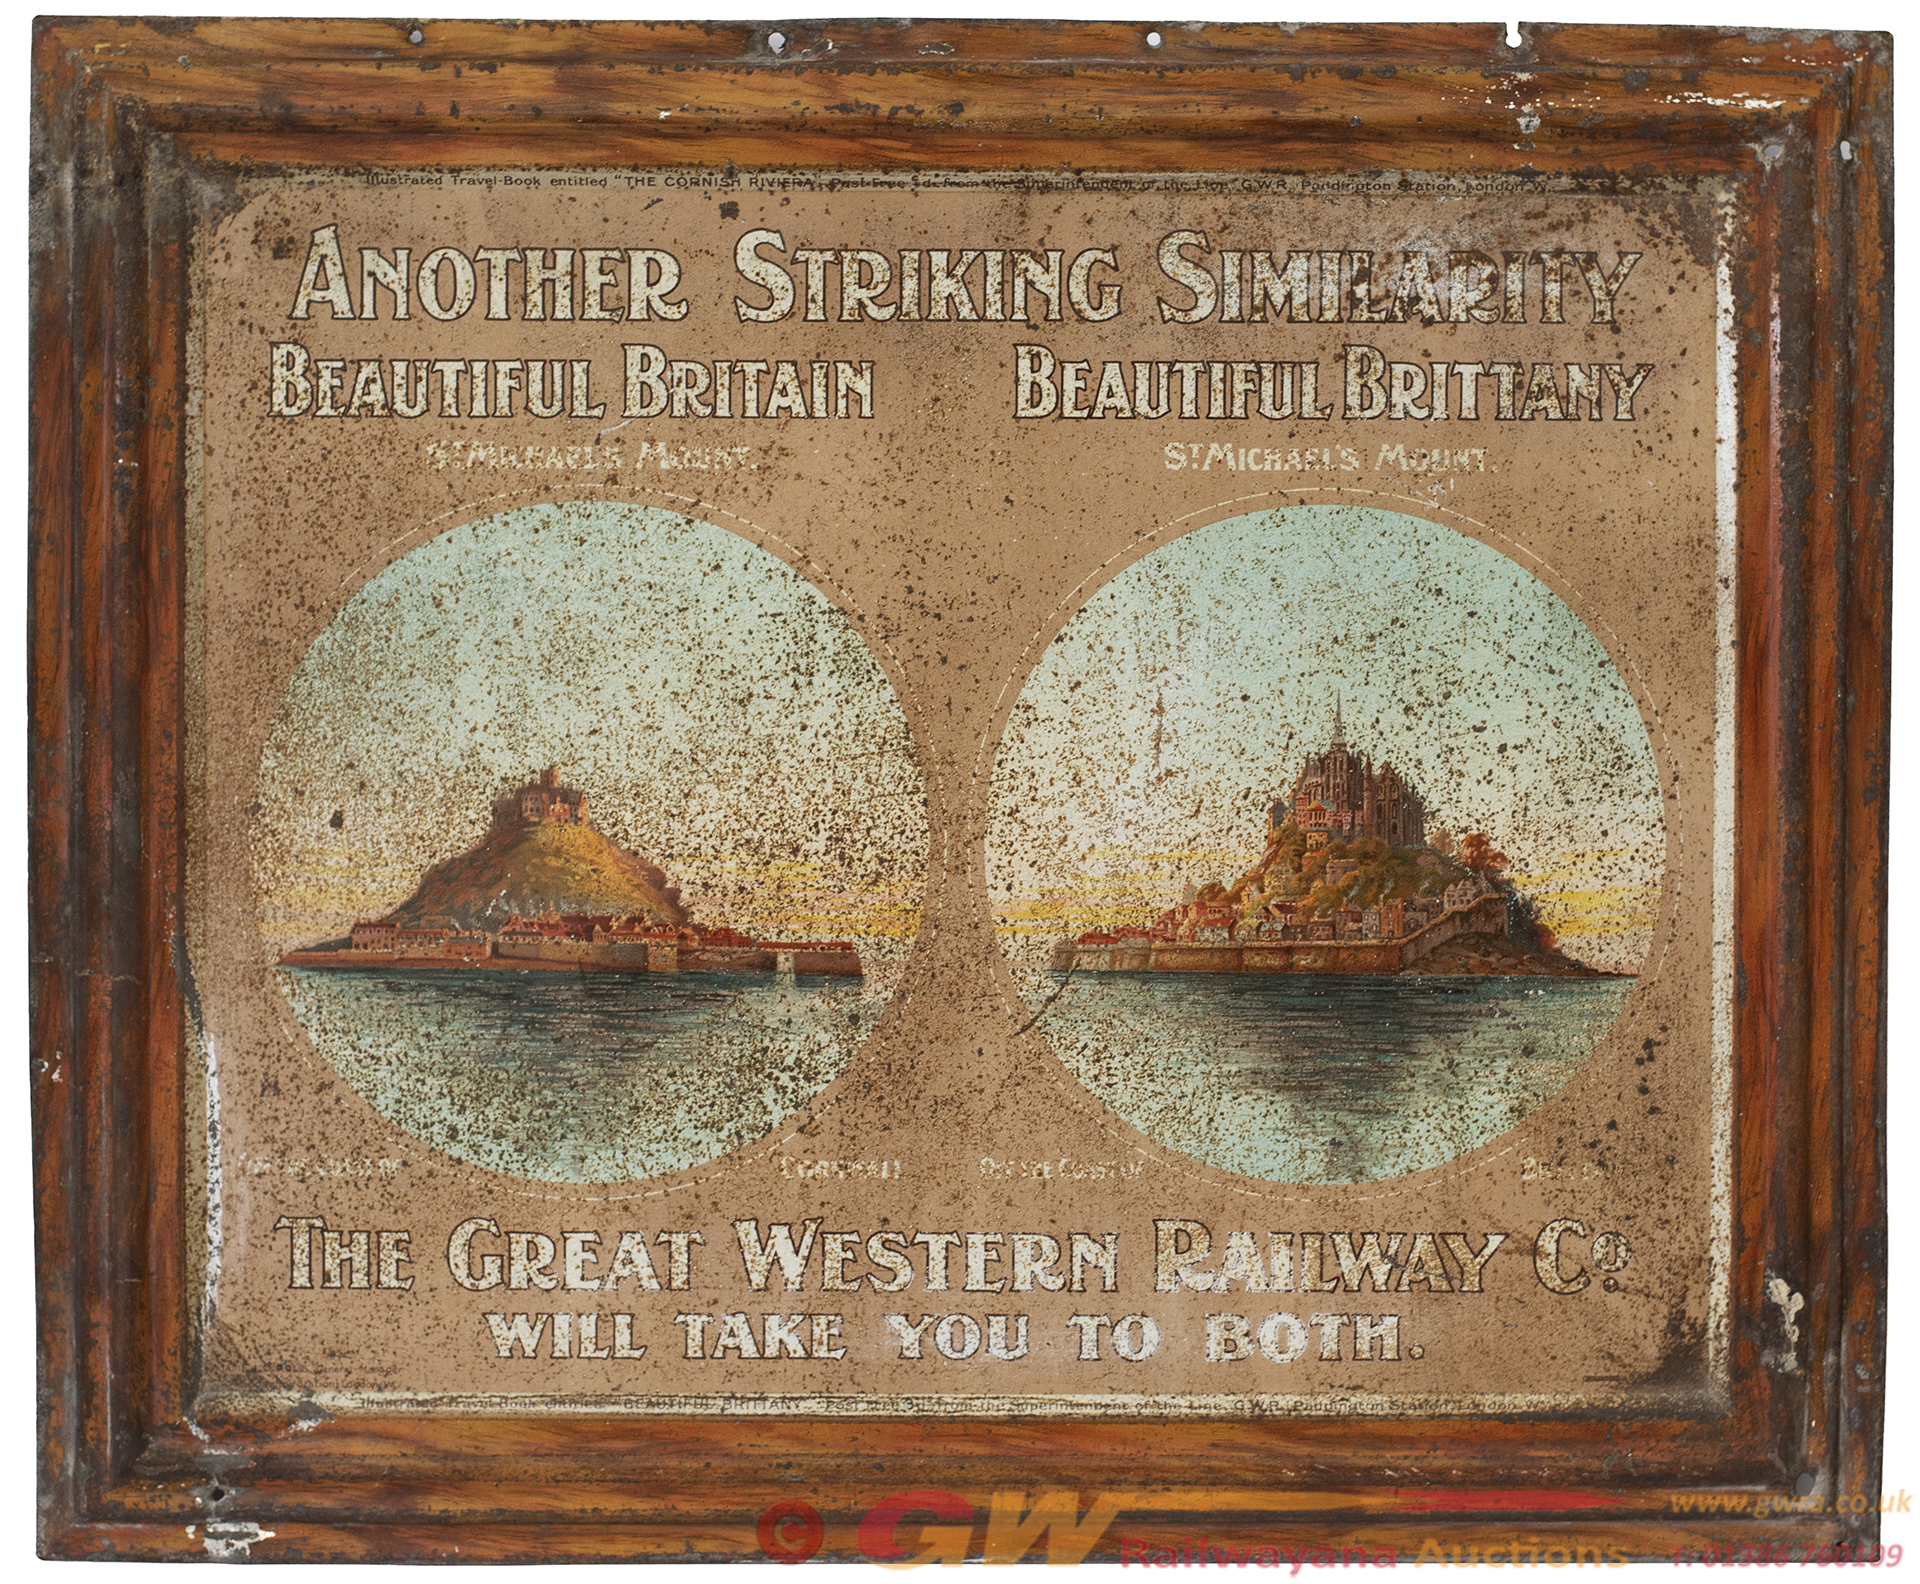 GWR Advertising Tinplate Wall Sign ANOTHER